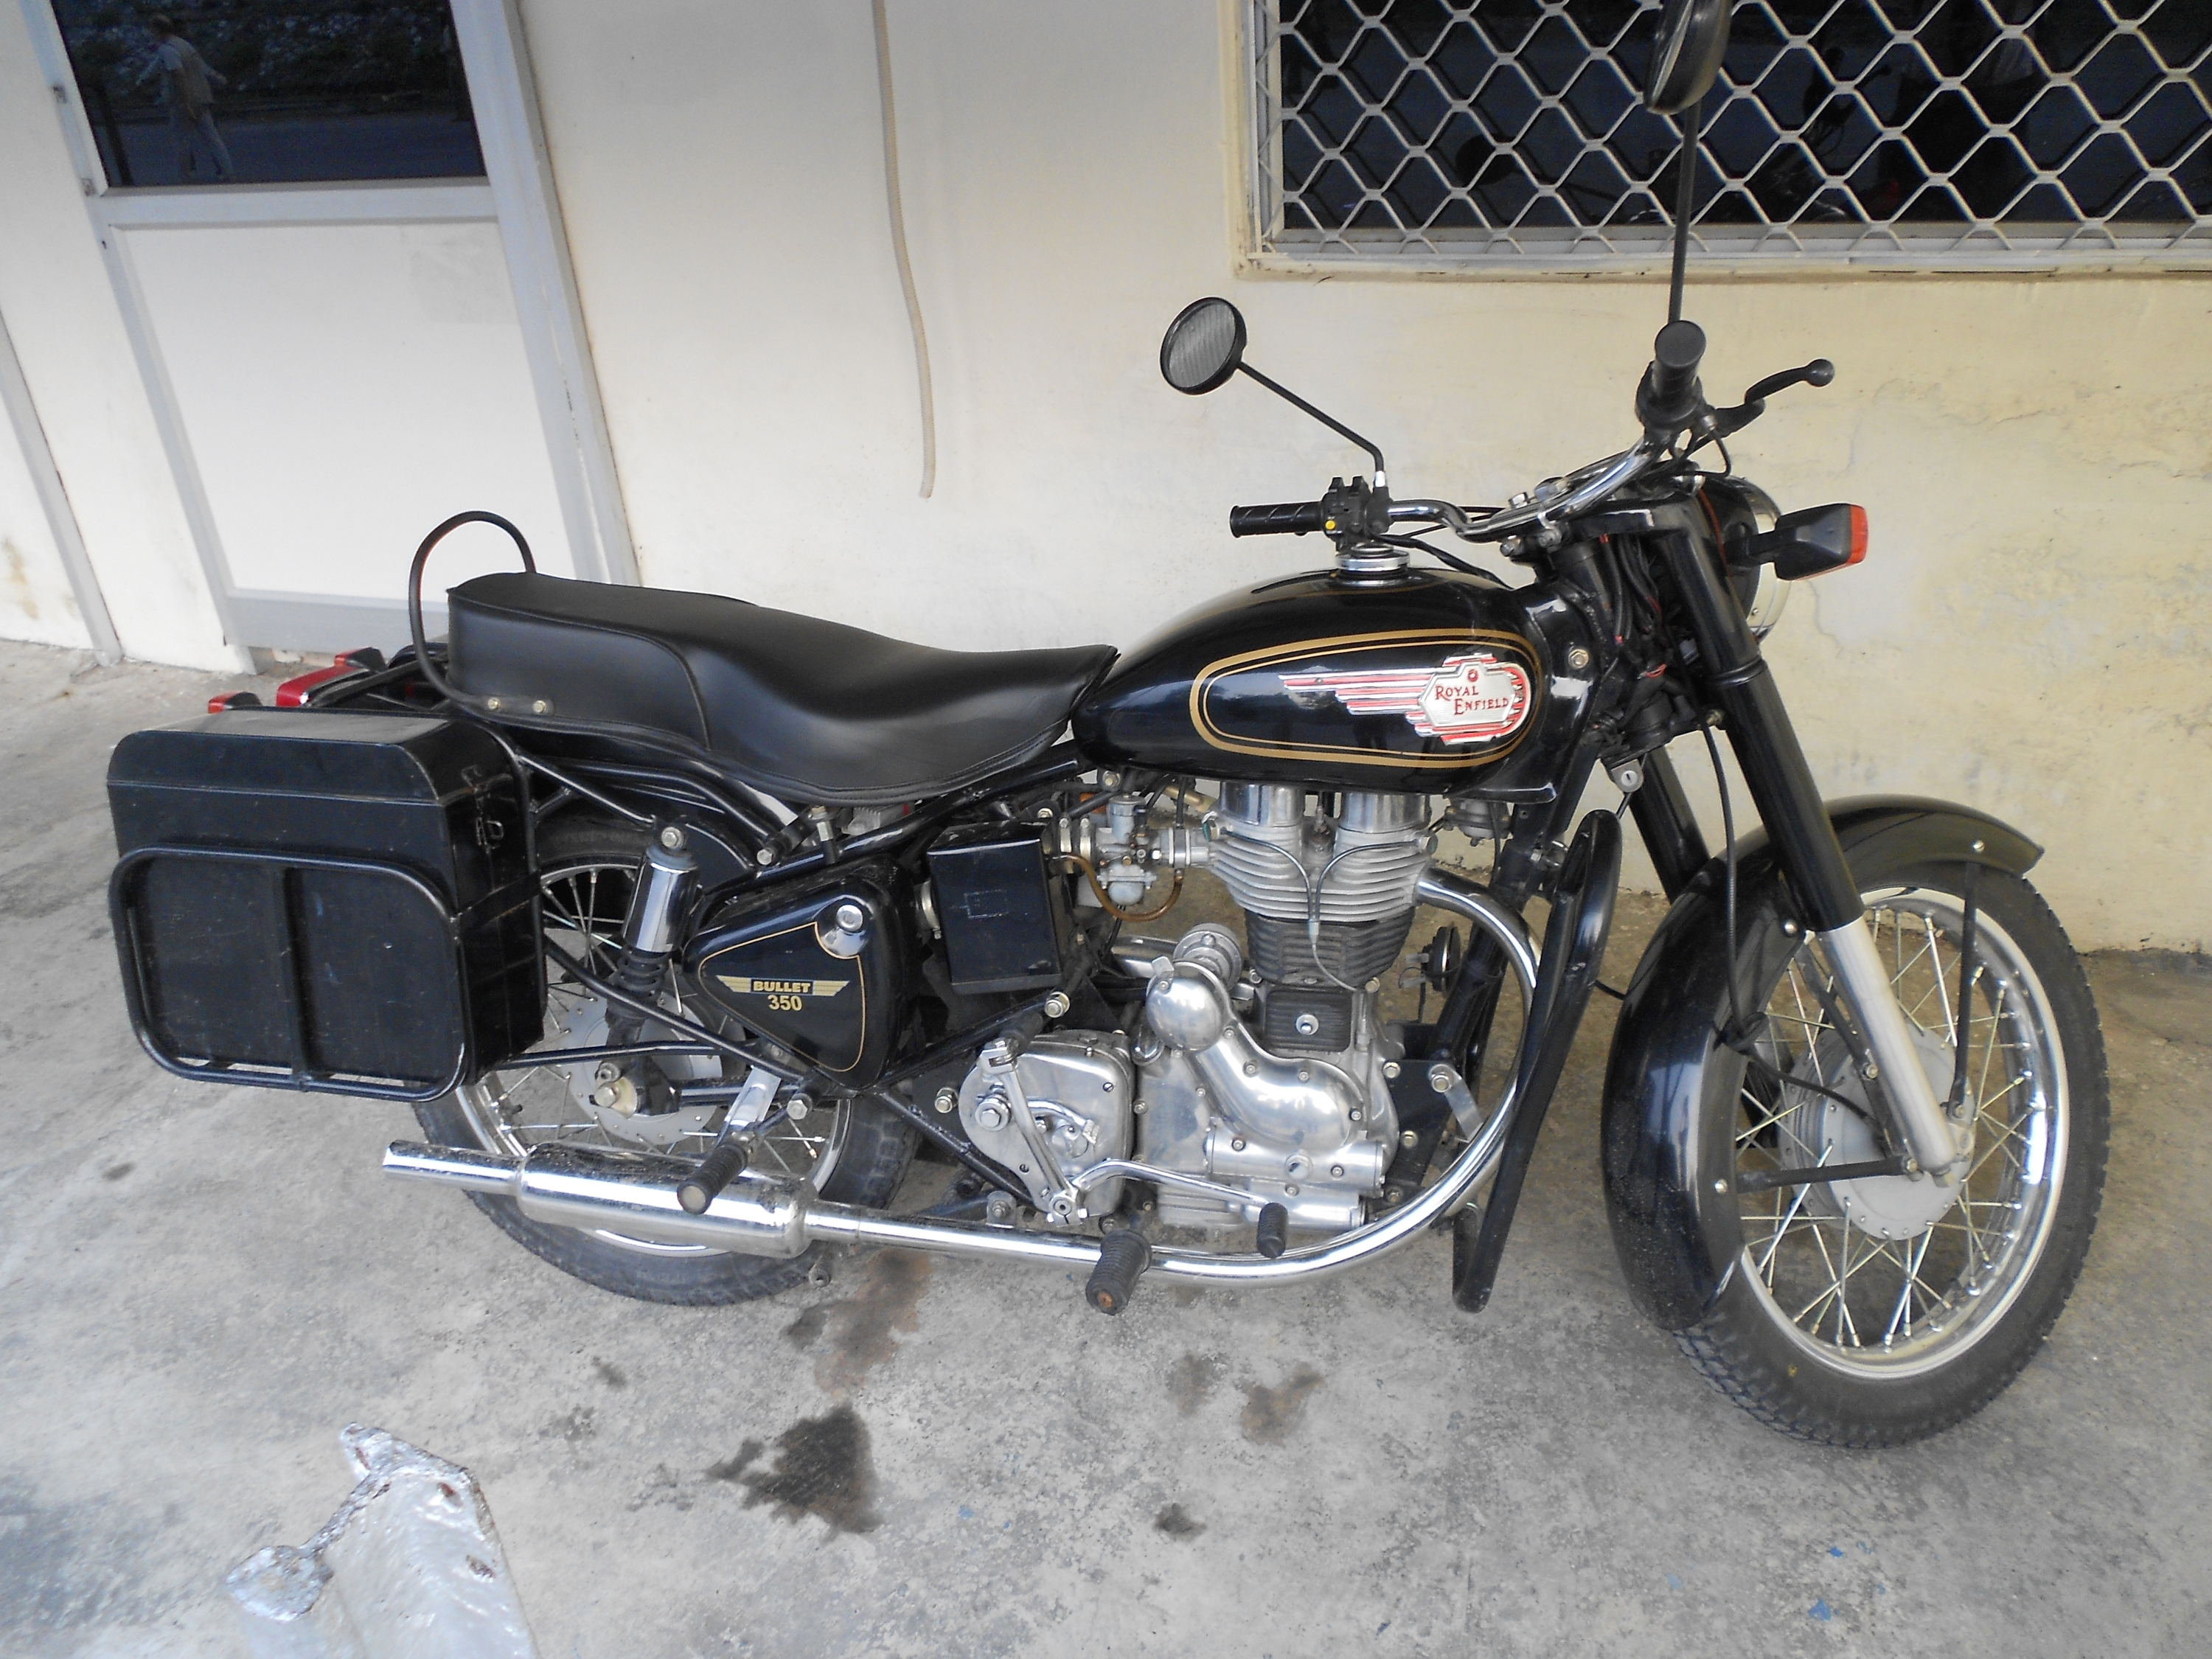 Royal Enfield Bullet 350 Army 1996 images #122789